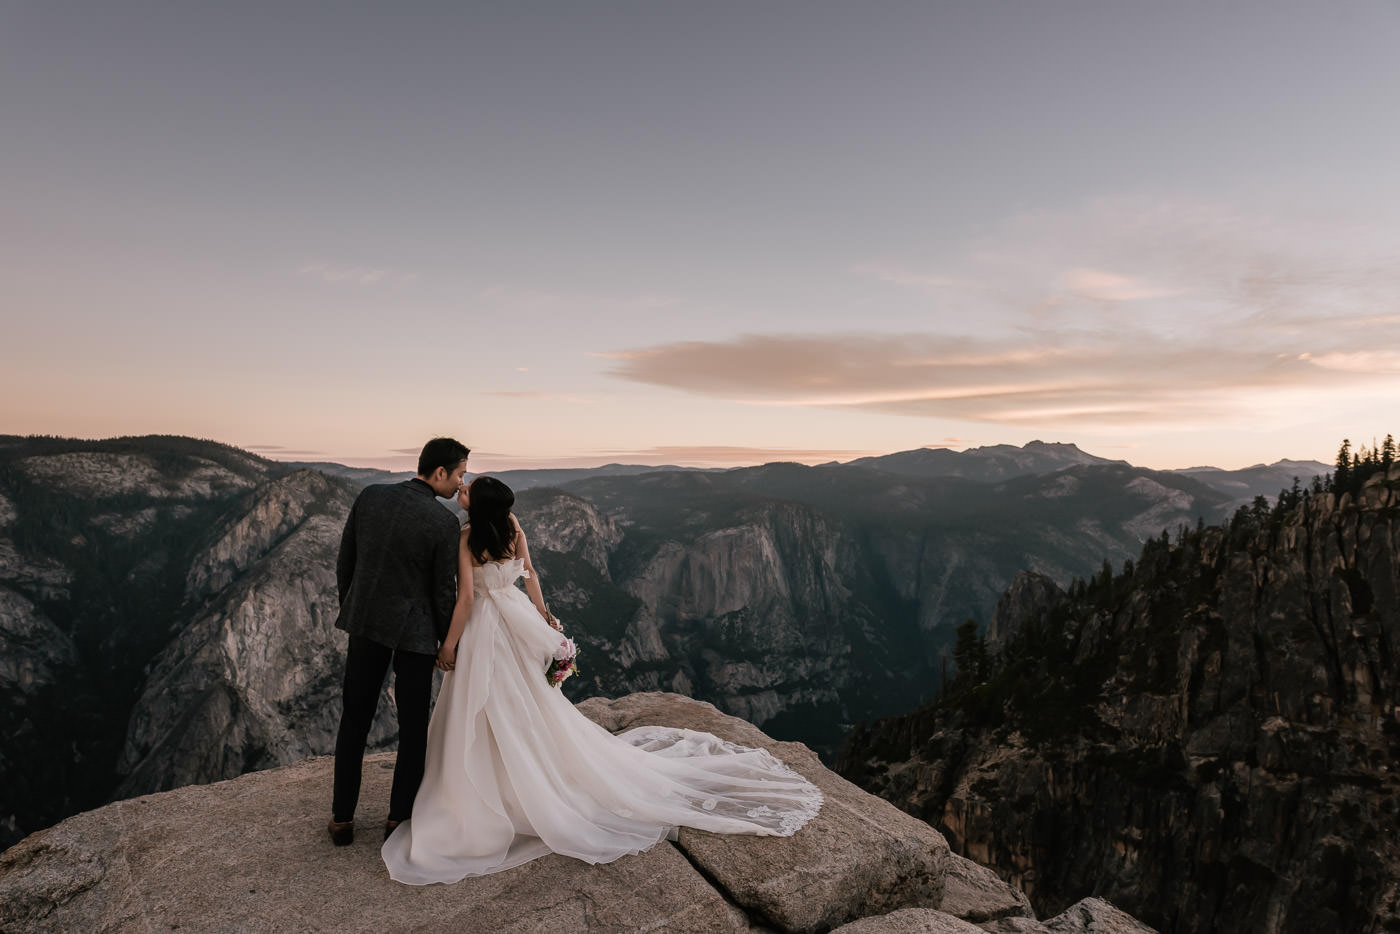 Taft Point elopement session in the majestic Yosemite Valley.